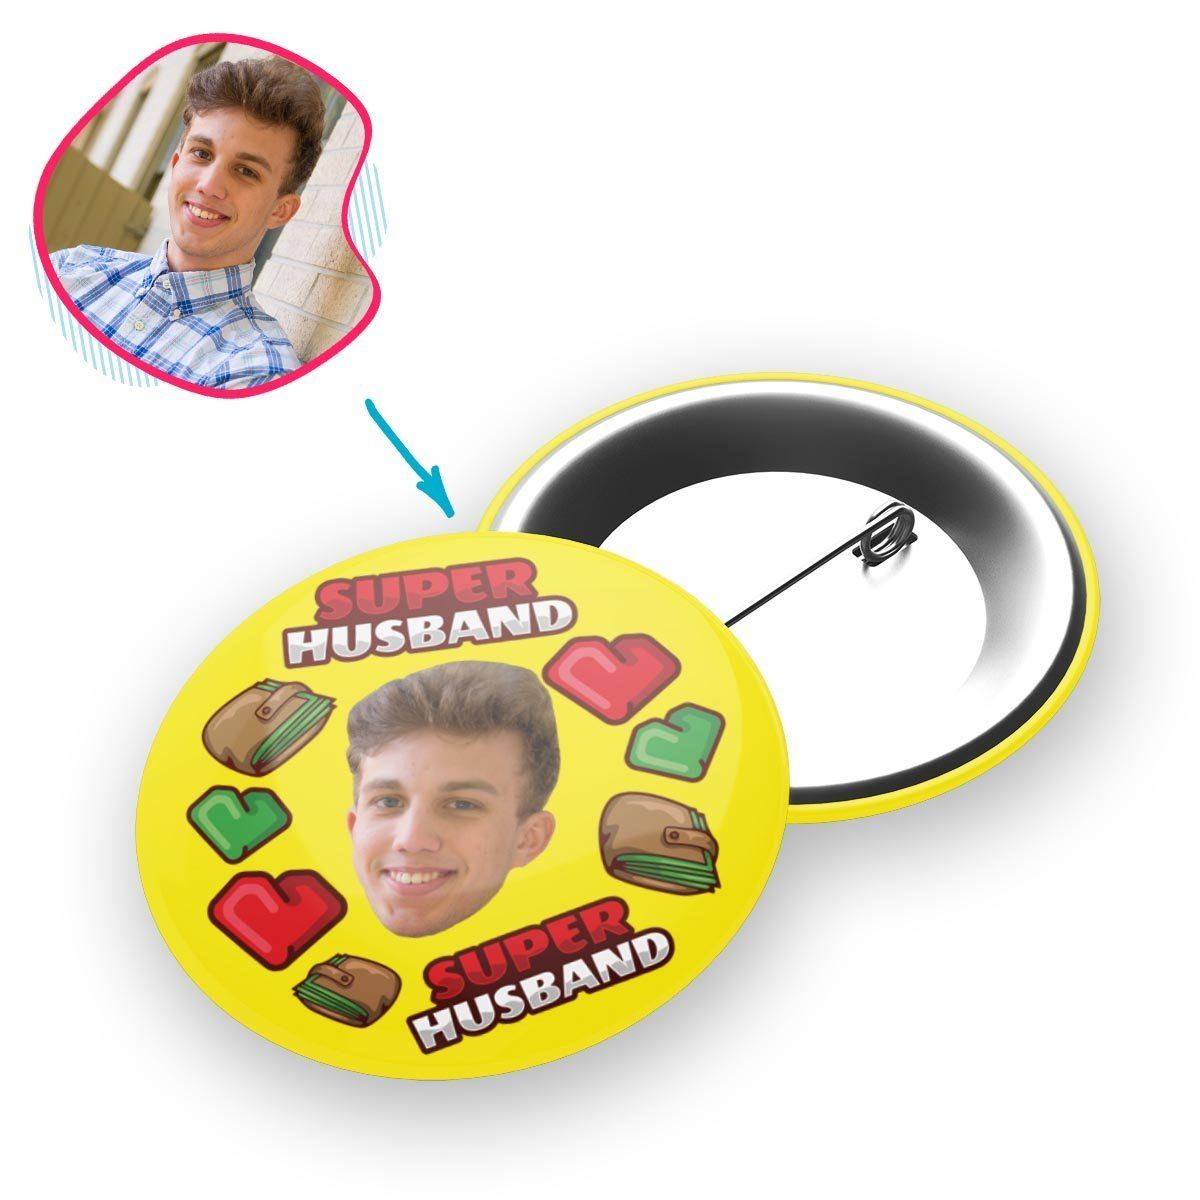 Yellow Husband personalized pin with photo of face printed on it